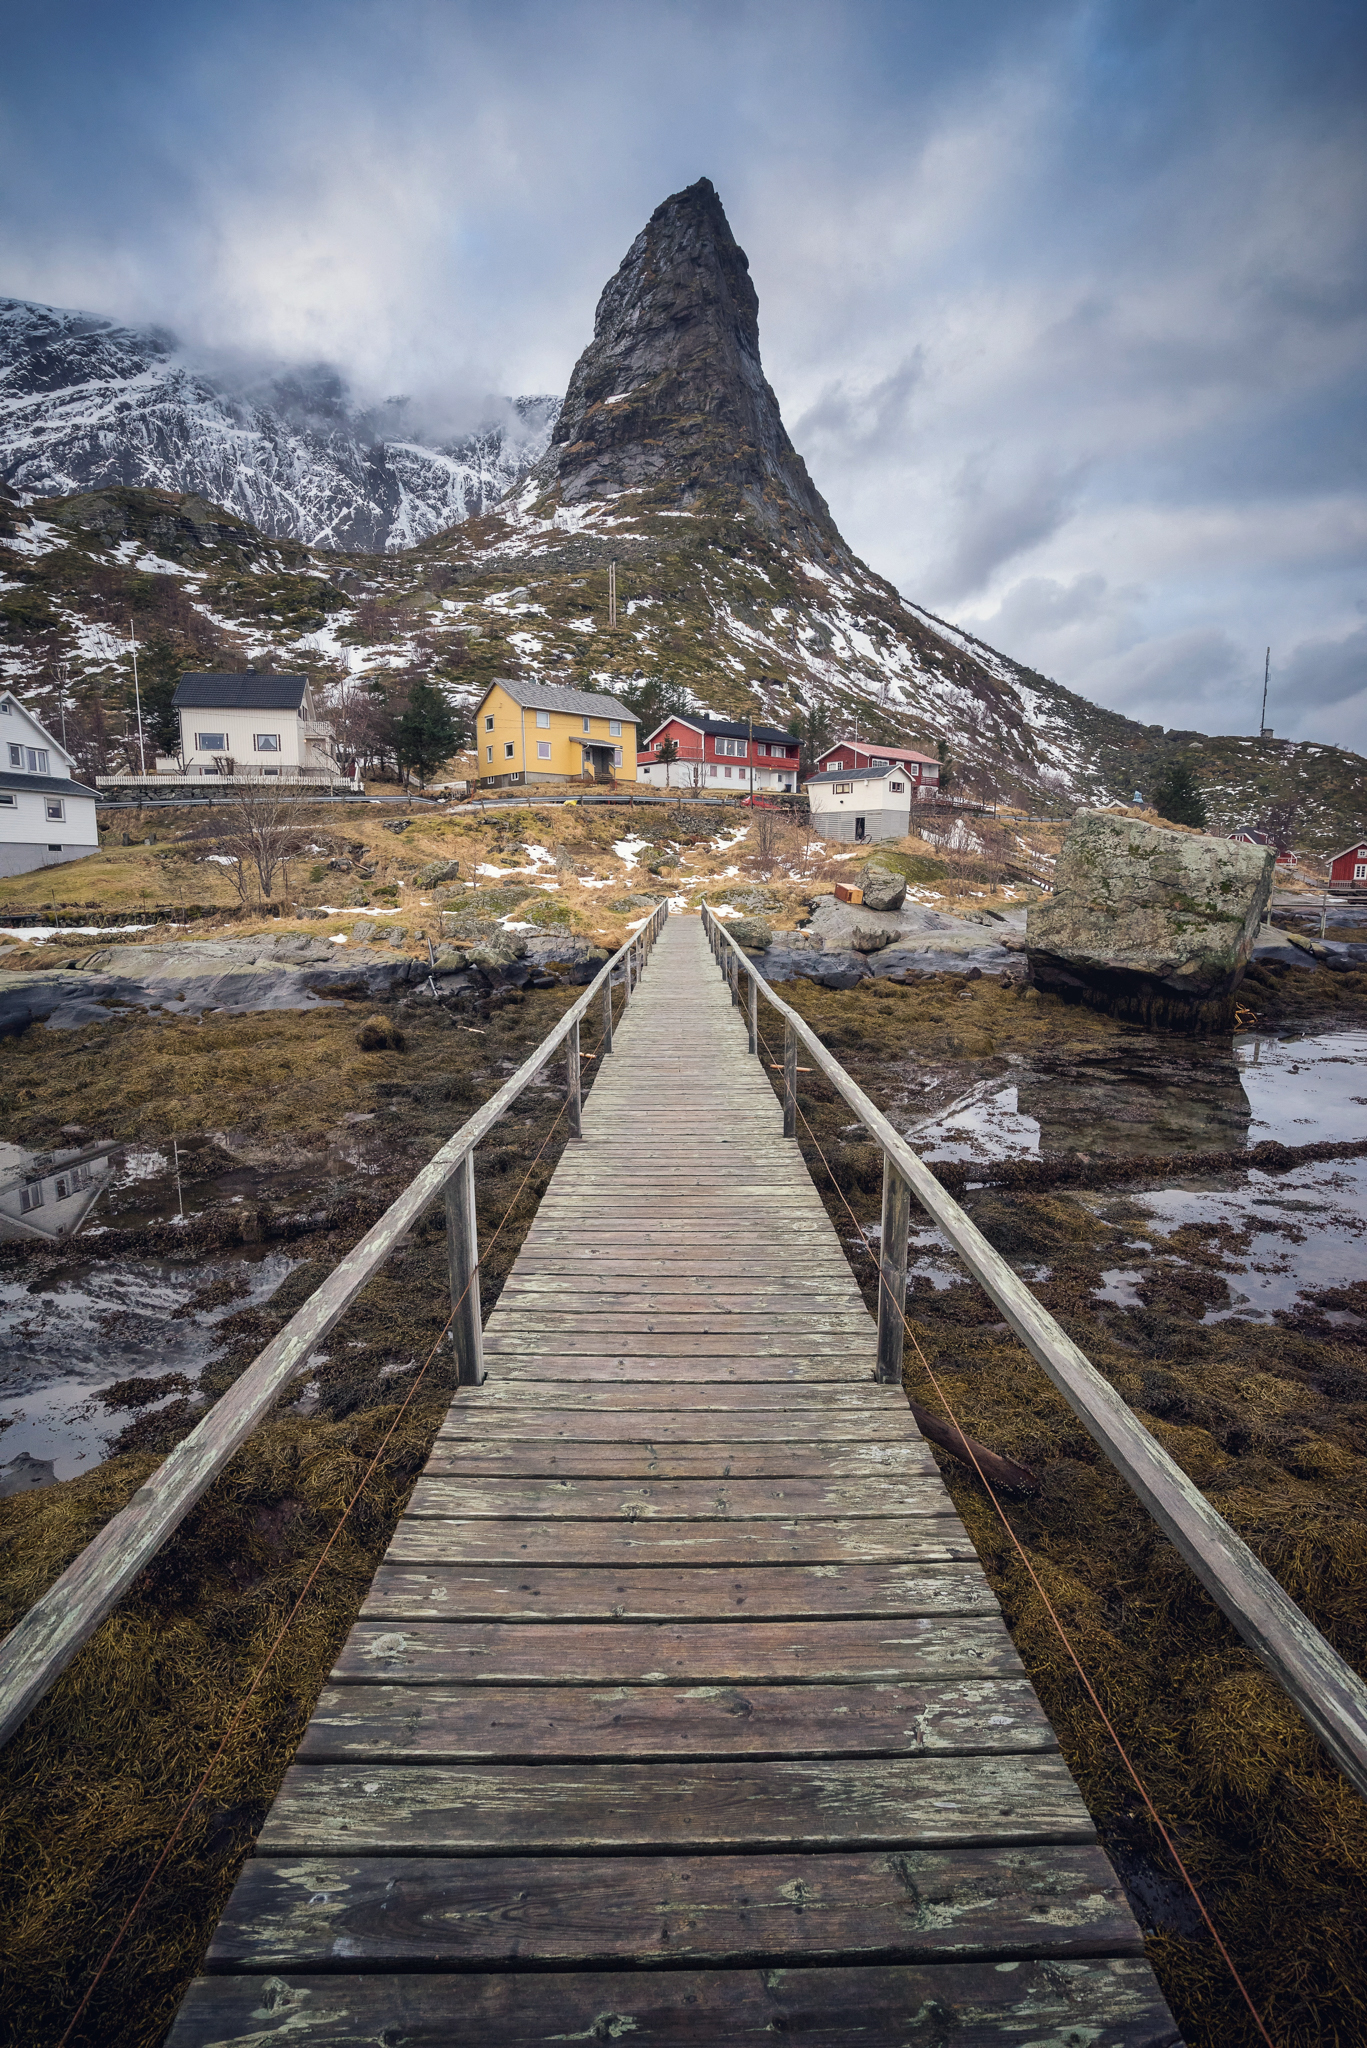 This little bridge in Reine is quite famous - for a good reason.